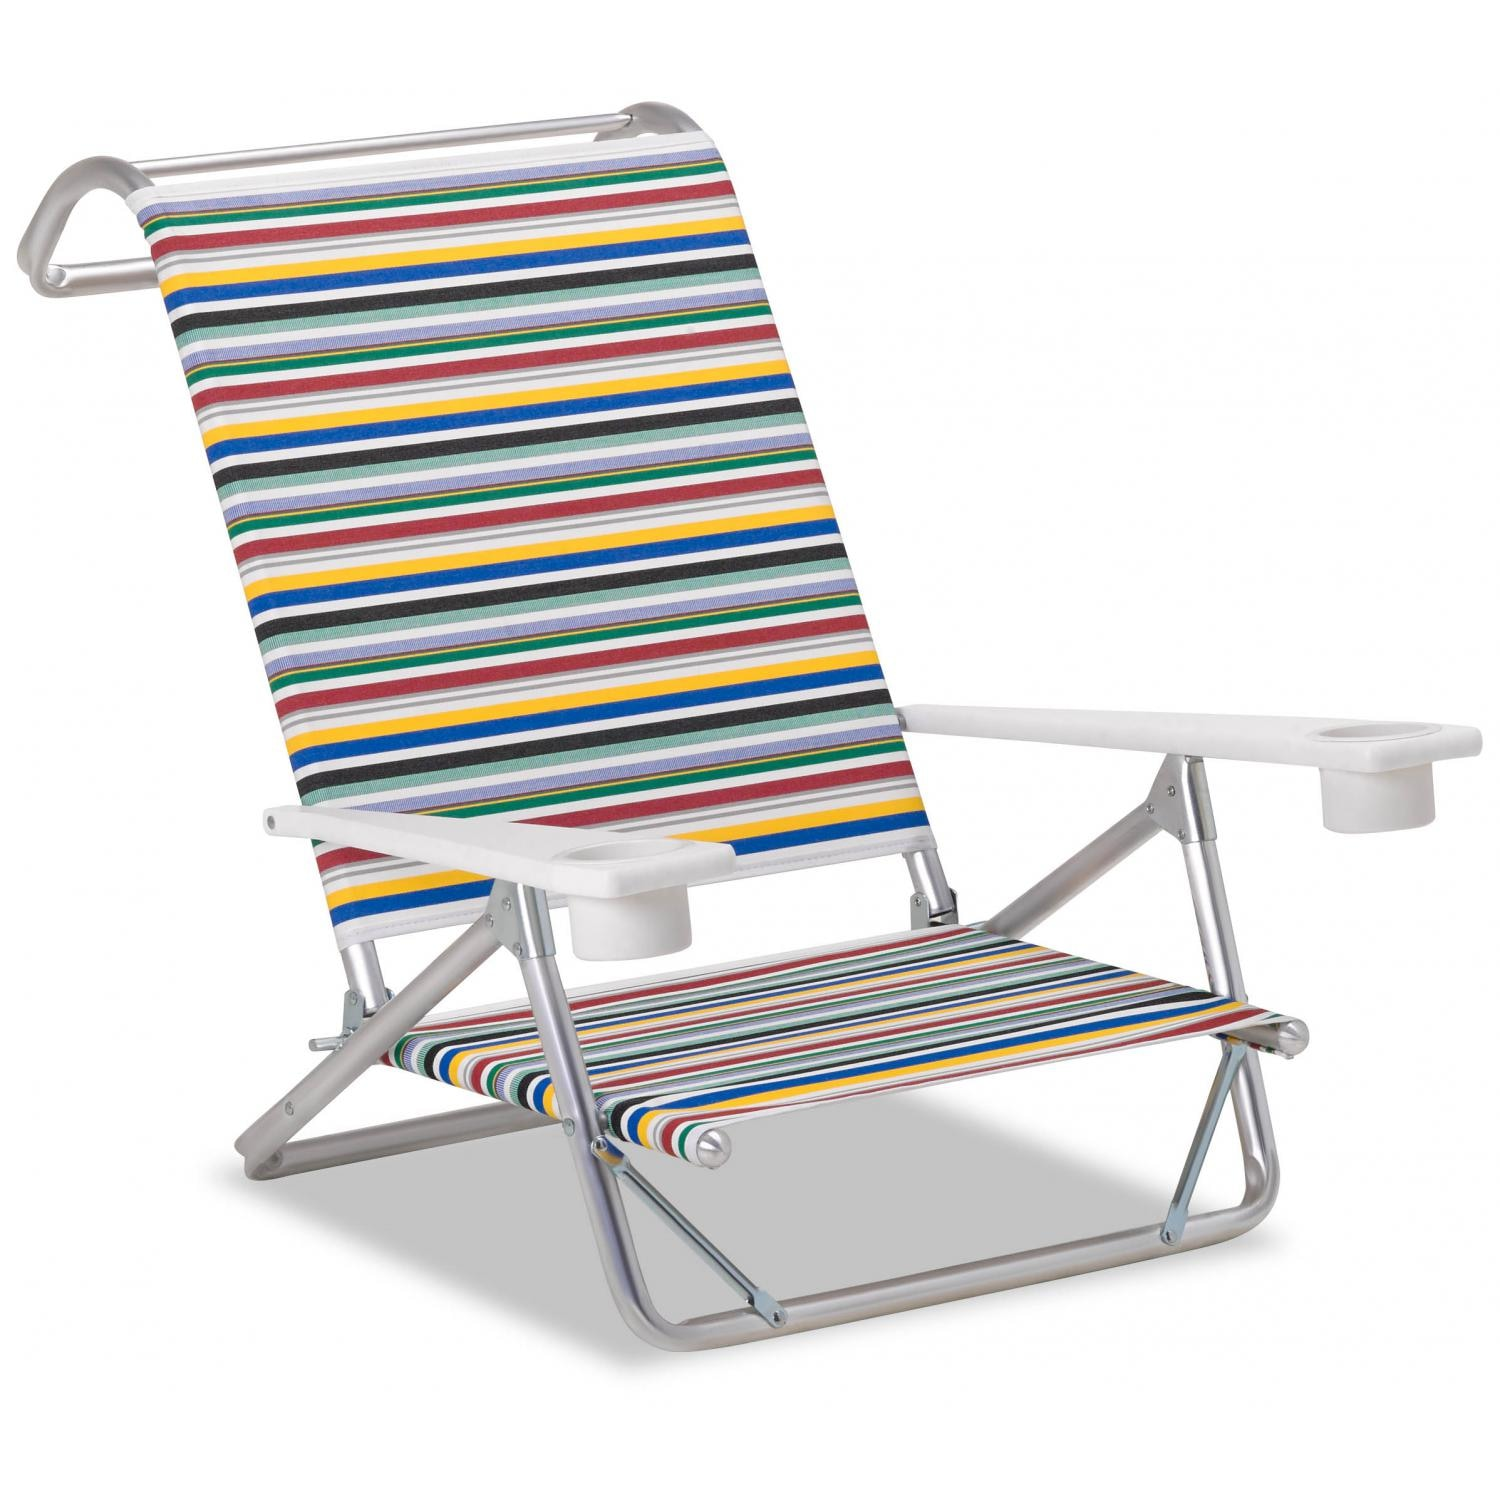 Original Mini Sun Folding Aluminum Beach Chair With Cupholders By